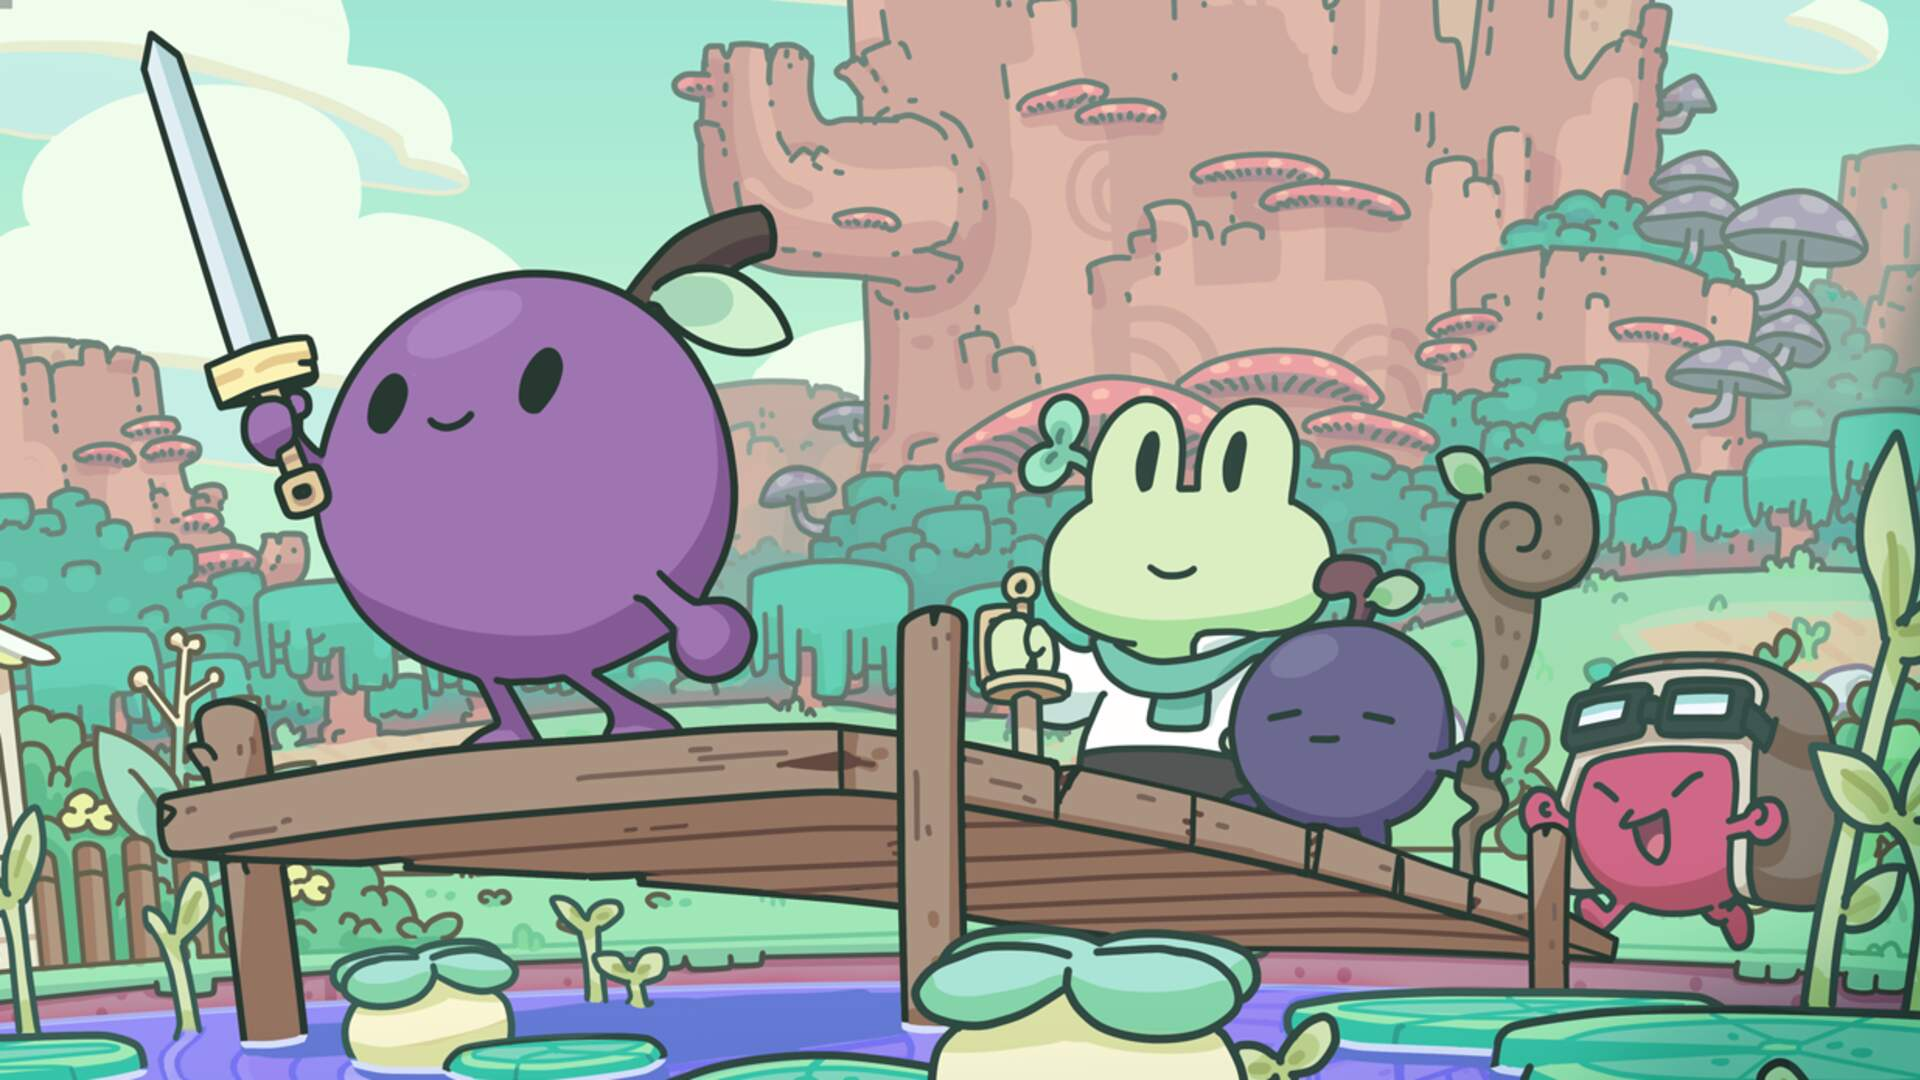 Garden Story is an Adorable Sim That Combines Zelda and Talking Grapes